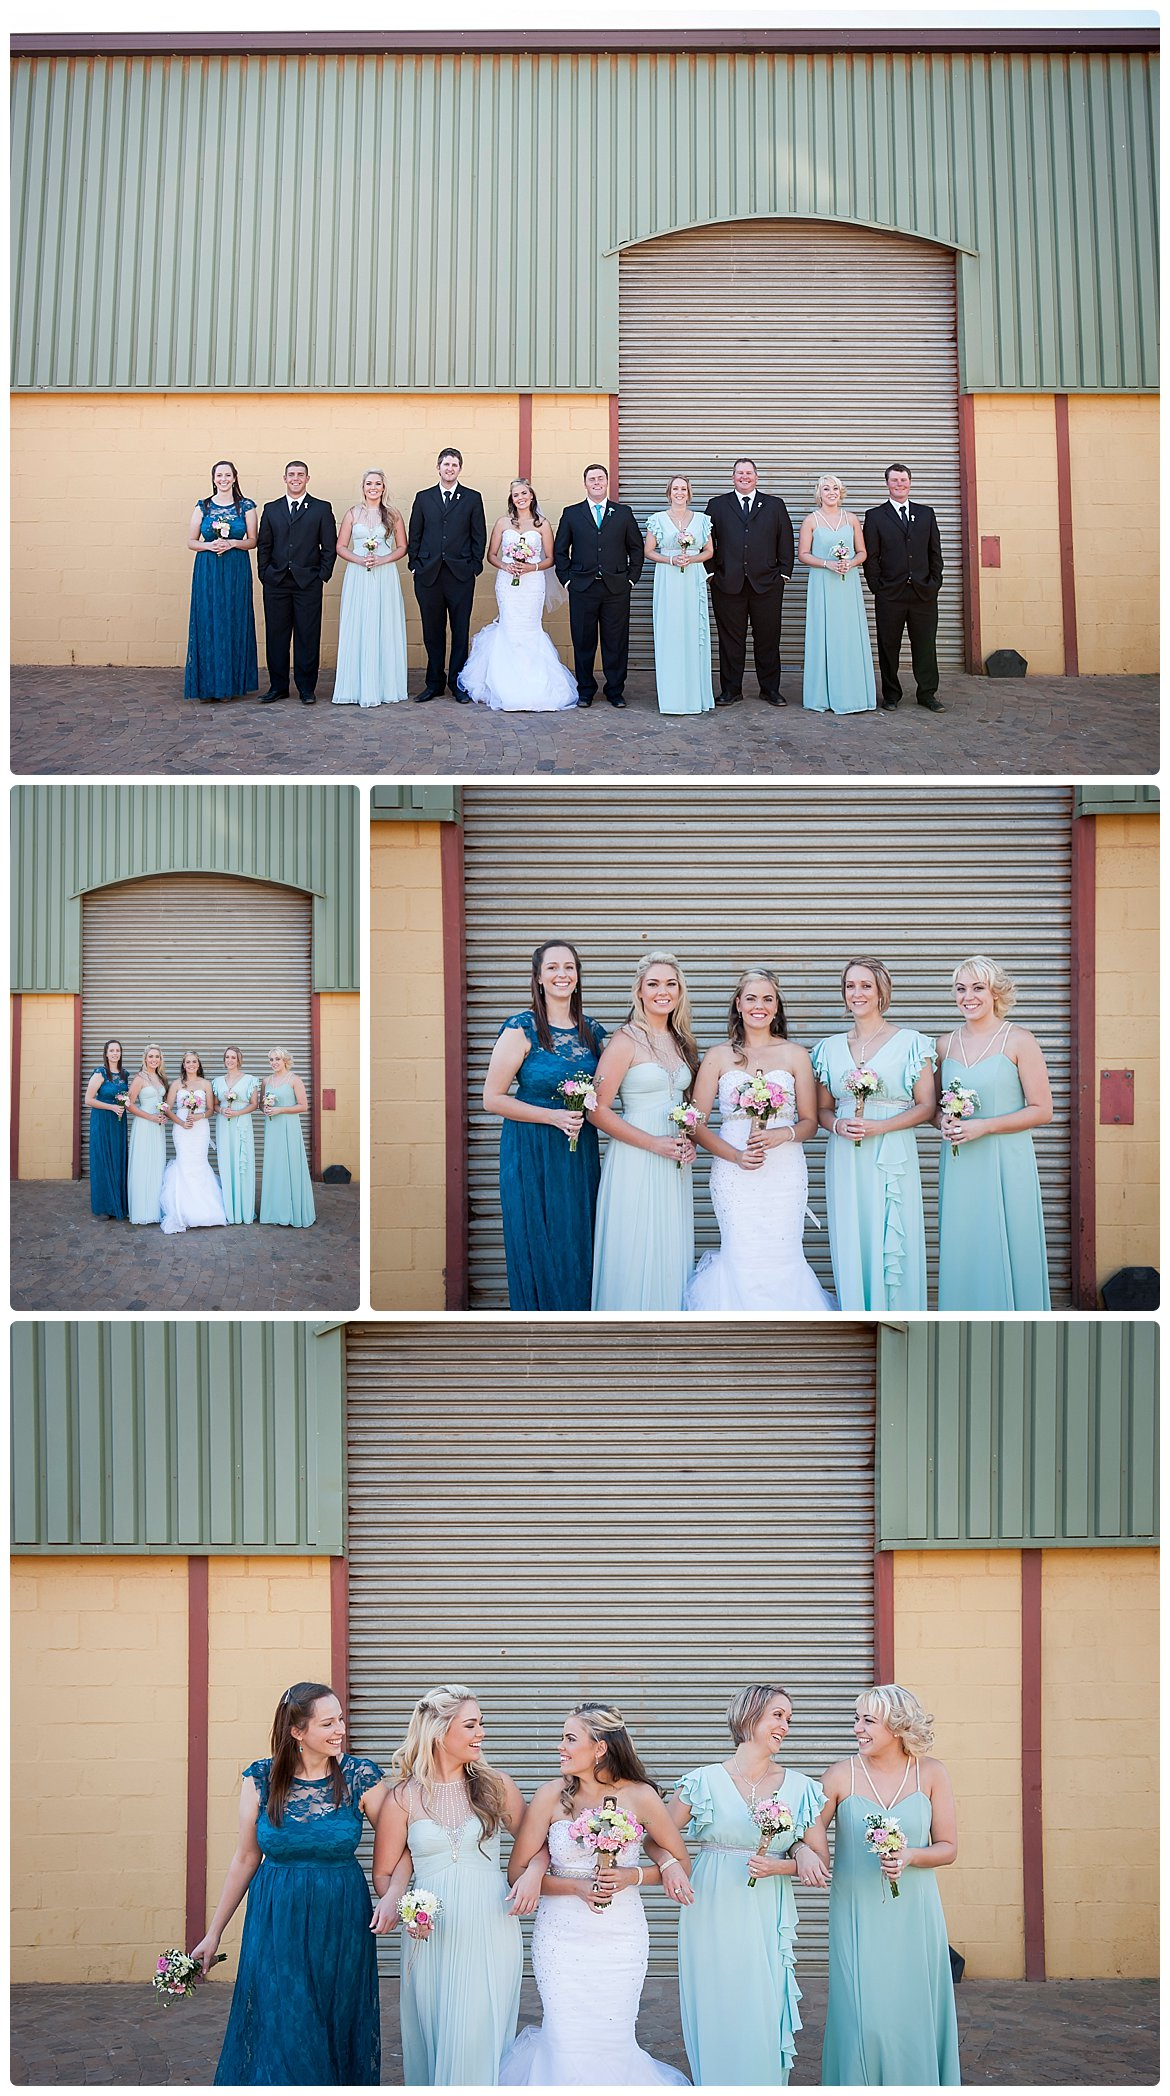 cape-town-wedding-photographer-delvera-joanne-markland-zack-heidi-0024